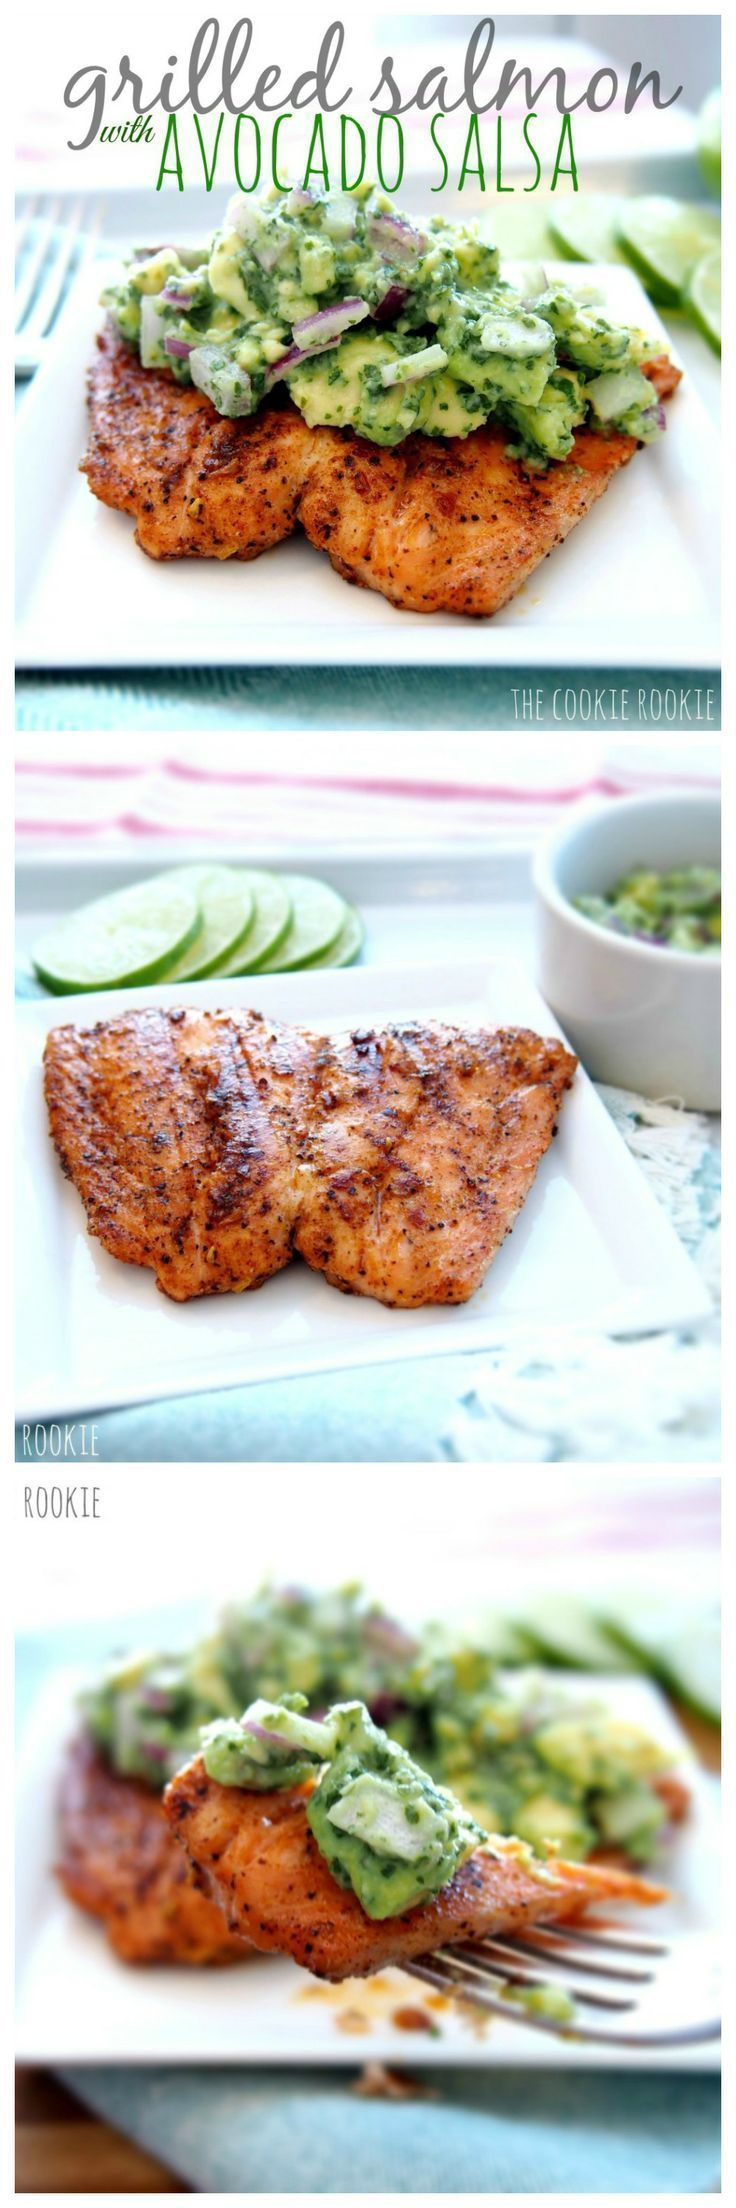 """Dinner Recipes Healthy Easy  Grilled Salmon with Avocado Salsa  """"Delicious, healthy and easy. """" Comments: The recipe is DELICIOUS! I make it at least once a week. That's how good it is  nice! I made this for a dinner party of 5. And everybody had their plates like clean. Everyone raved about it! """"2 lbs salmon, cut into 4 pieces 1 tbs olive oil  1 tsp salt 1 tsp ground cumin 1 tsp paprika powder 1 tsp onion powder ½ tsp ancho chili powder 1 tsp black pepper for the Avocado sals"""